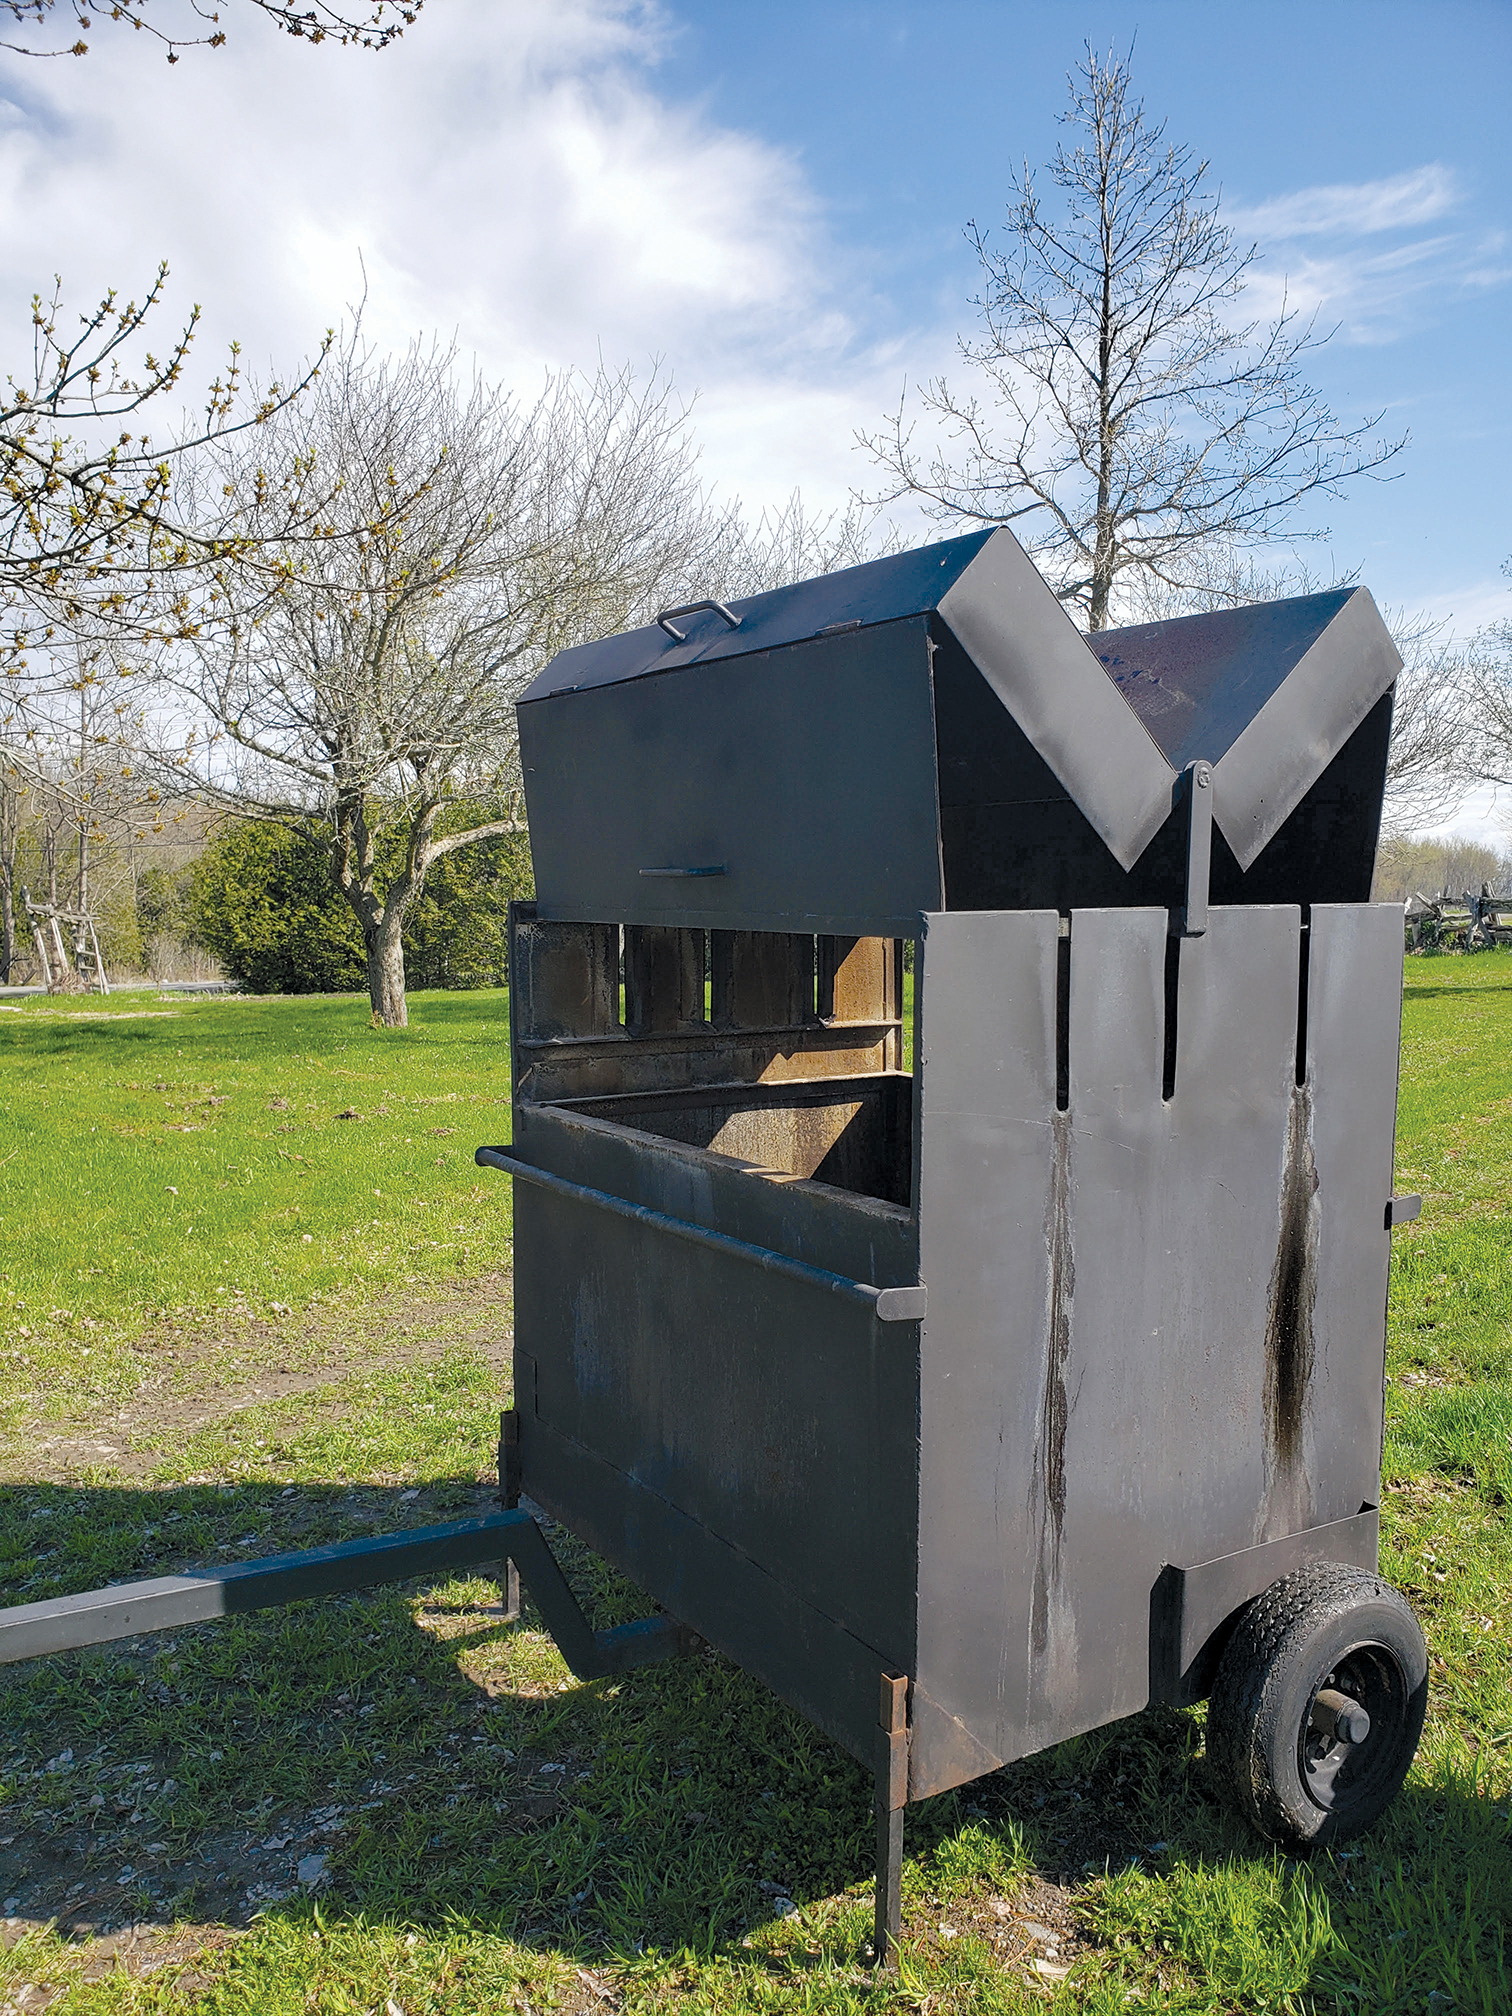 The Model T-inspired butterfly doors allow easy access to the cooking area on the grill. Photo courtesy Bobbie-Joe Blackburn.